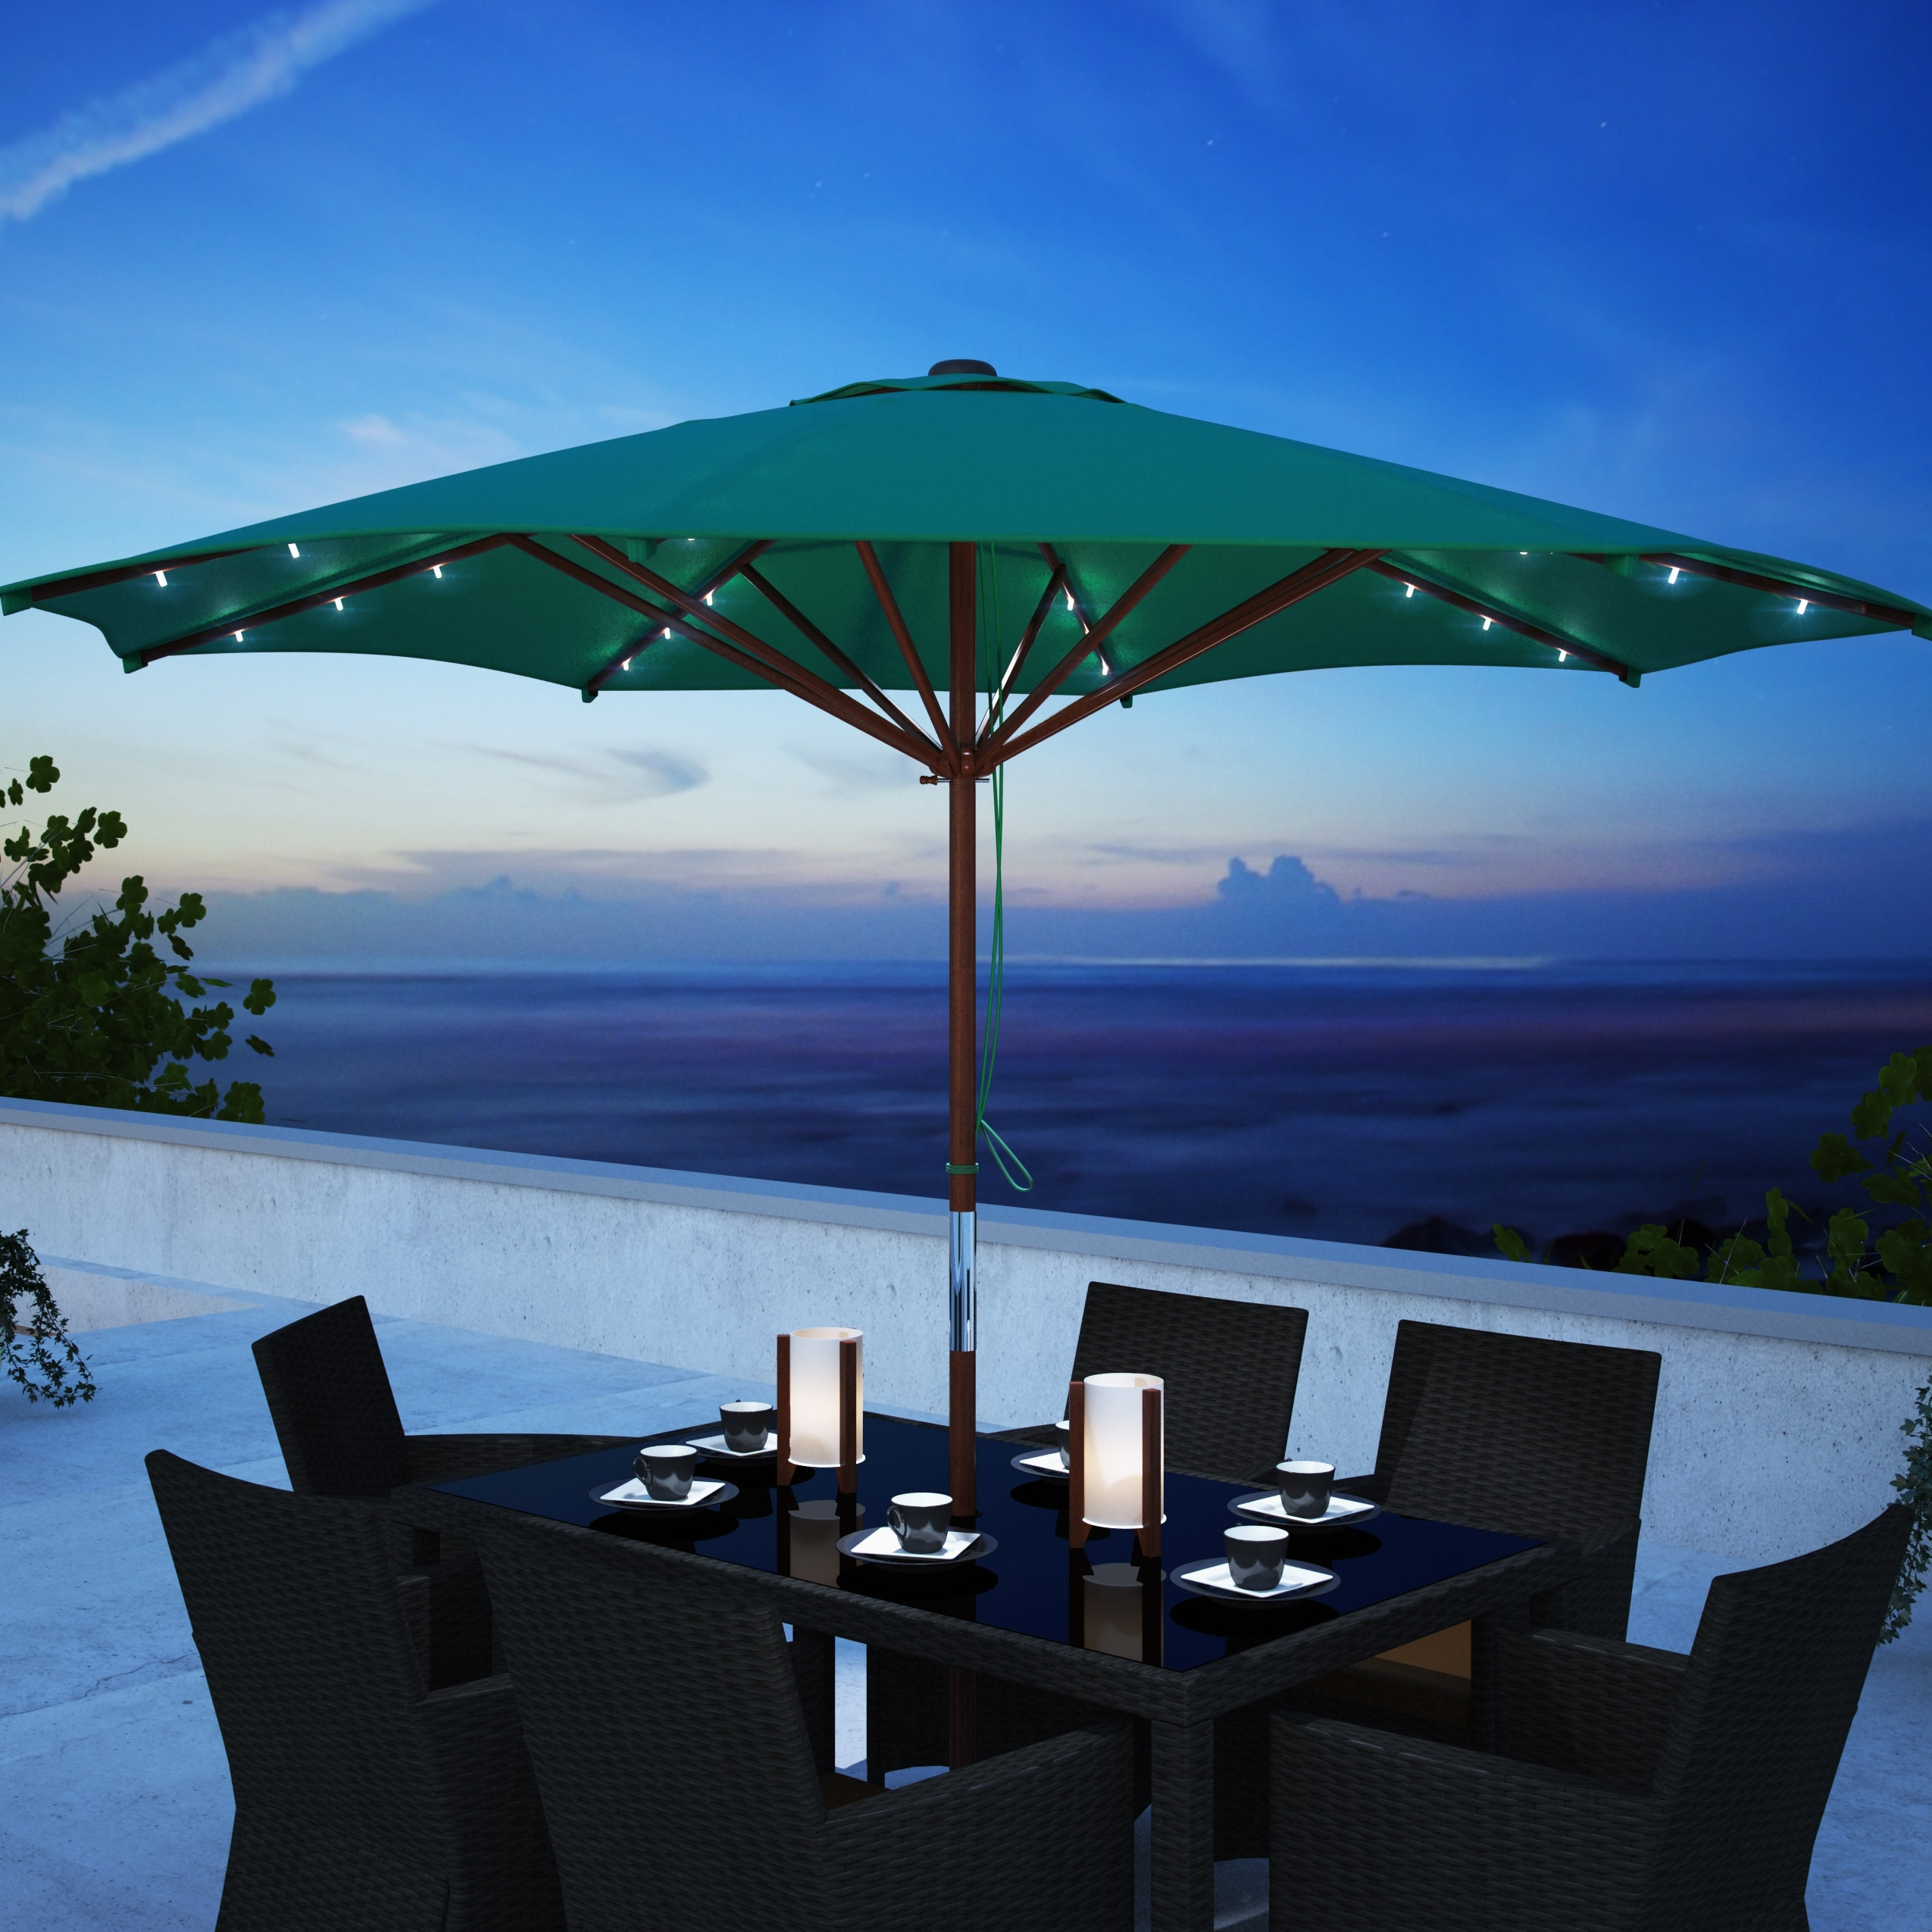 Solar Powered Patio Umbrellas In Well Known Corliving Patio Umbrella With Solar Power Led Lights Taupe (View 13 of 20)